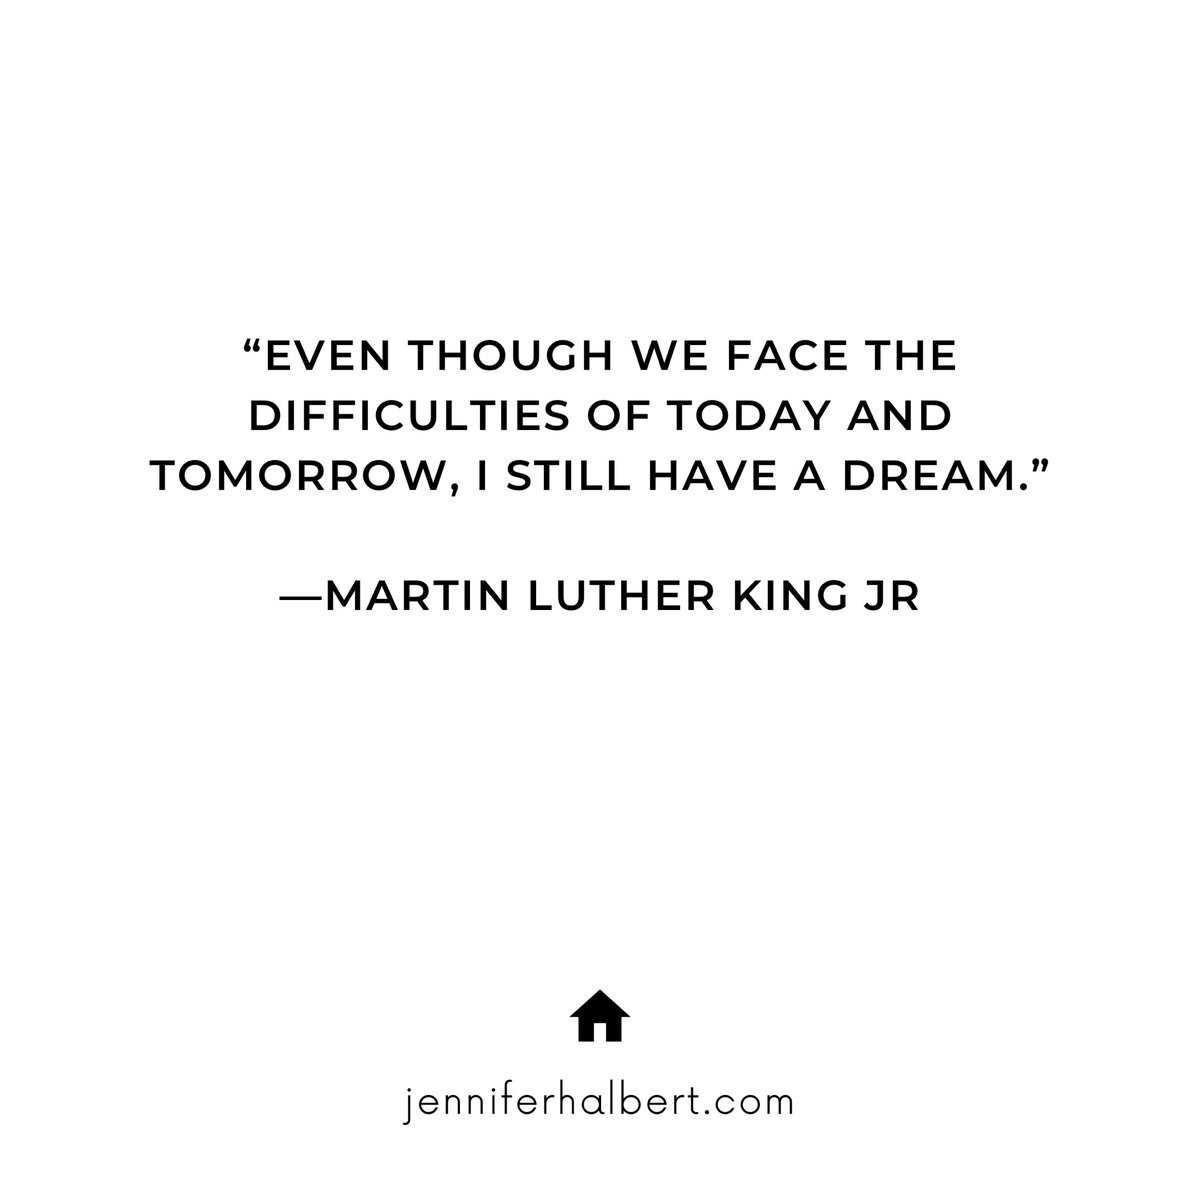 HAPPY MLK DAY!  ⁣⁣⁣ ⁣⁣⁣ #ihaveadream #mlkday #dream #martinlutherking #mlk #difficulties #today #tomorrow #ihaveadream #martinlutherkingday #quotes #quote #mlkquotes #dreams #equality #peace #life #heroes #berkshirehathawayhomeservices